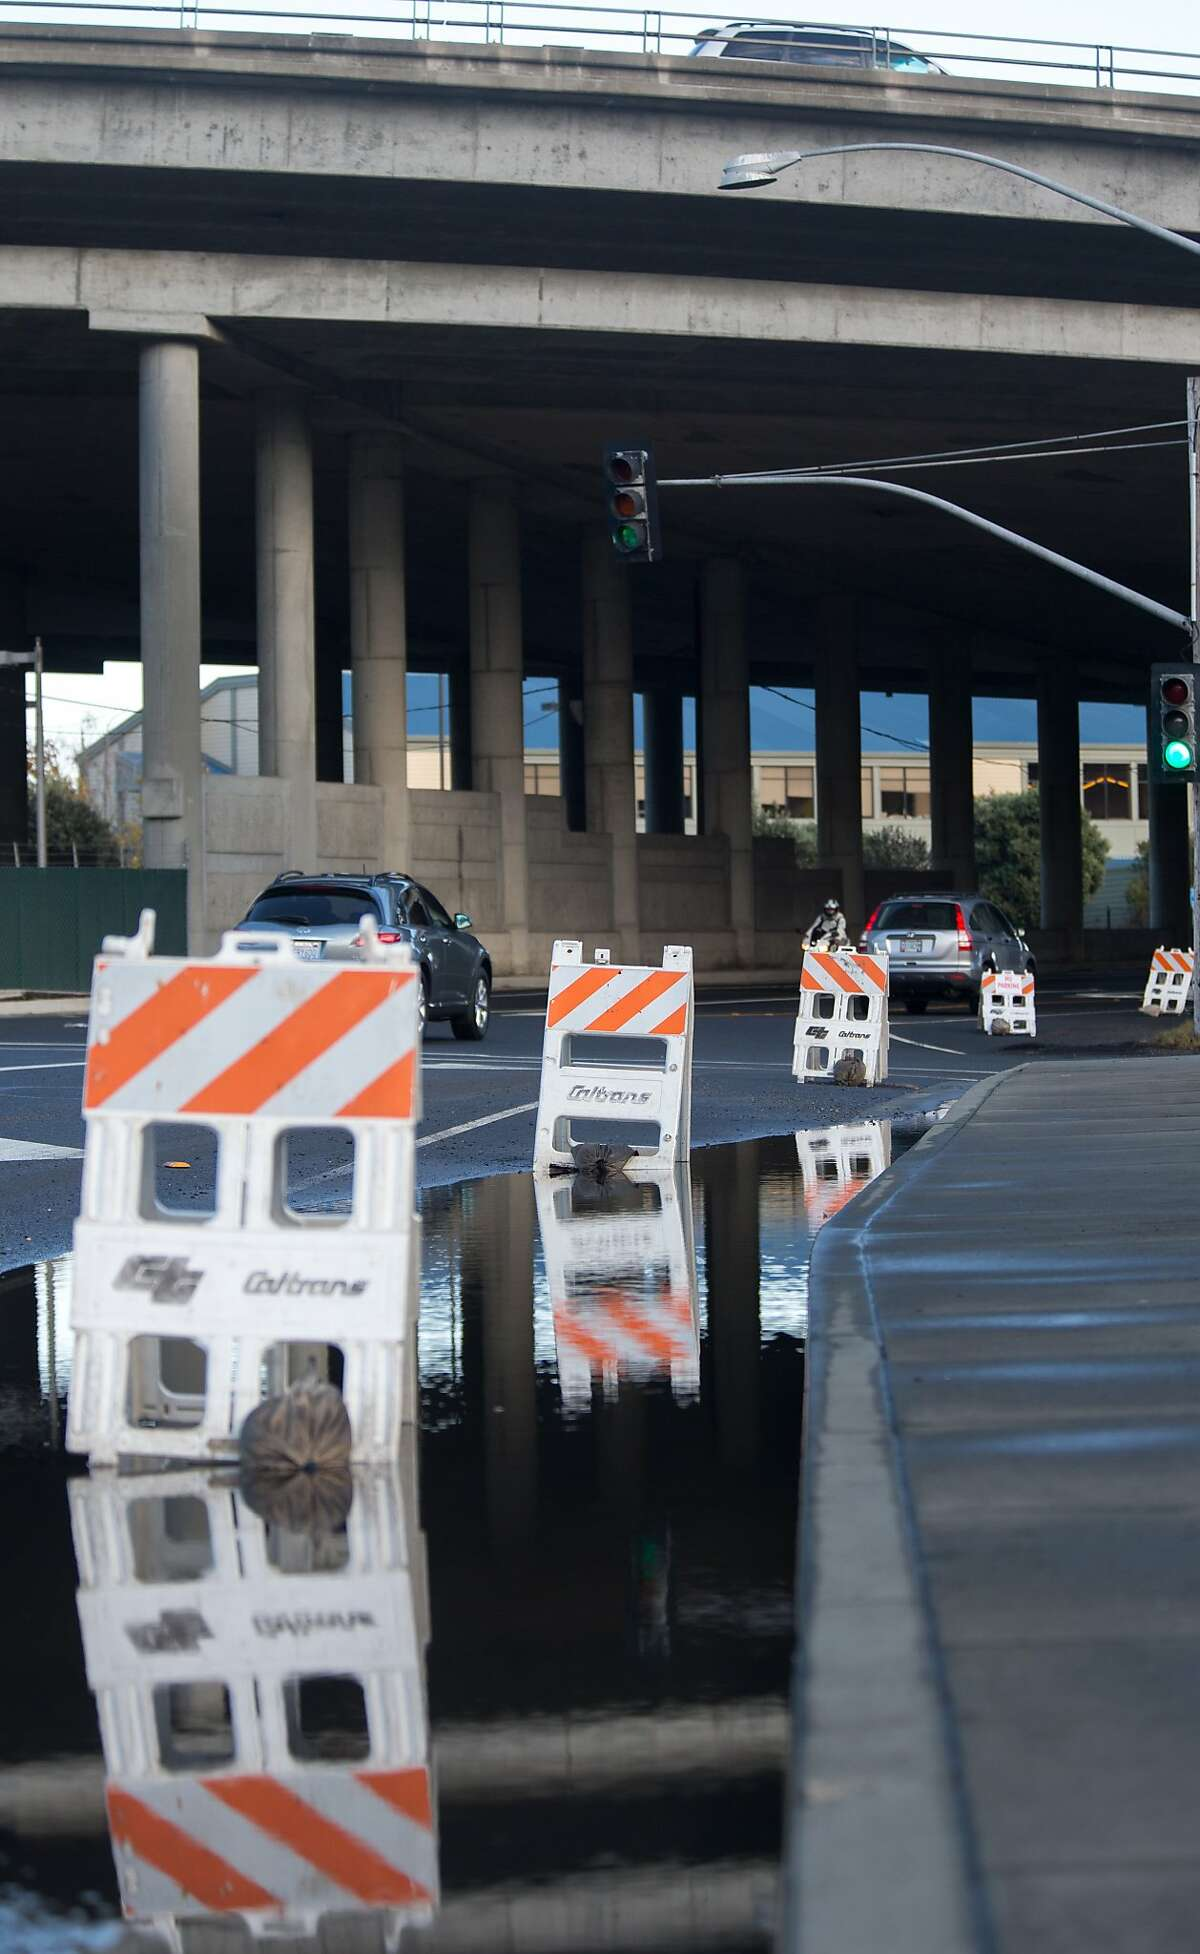 Signs of flooding are seen at the Park and Ride lot on Monday, Nov. 23, 2015 in Mill Valley, Calif.